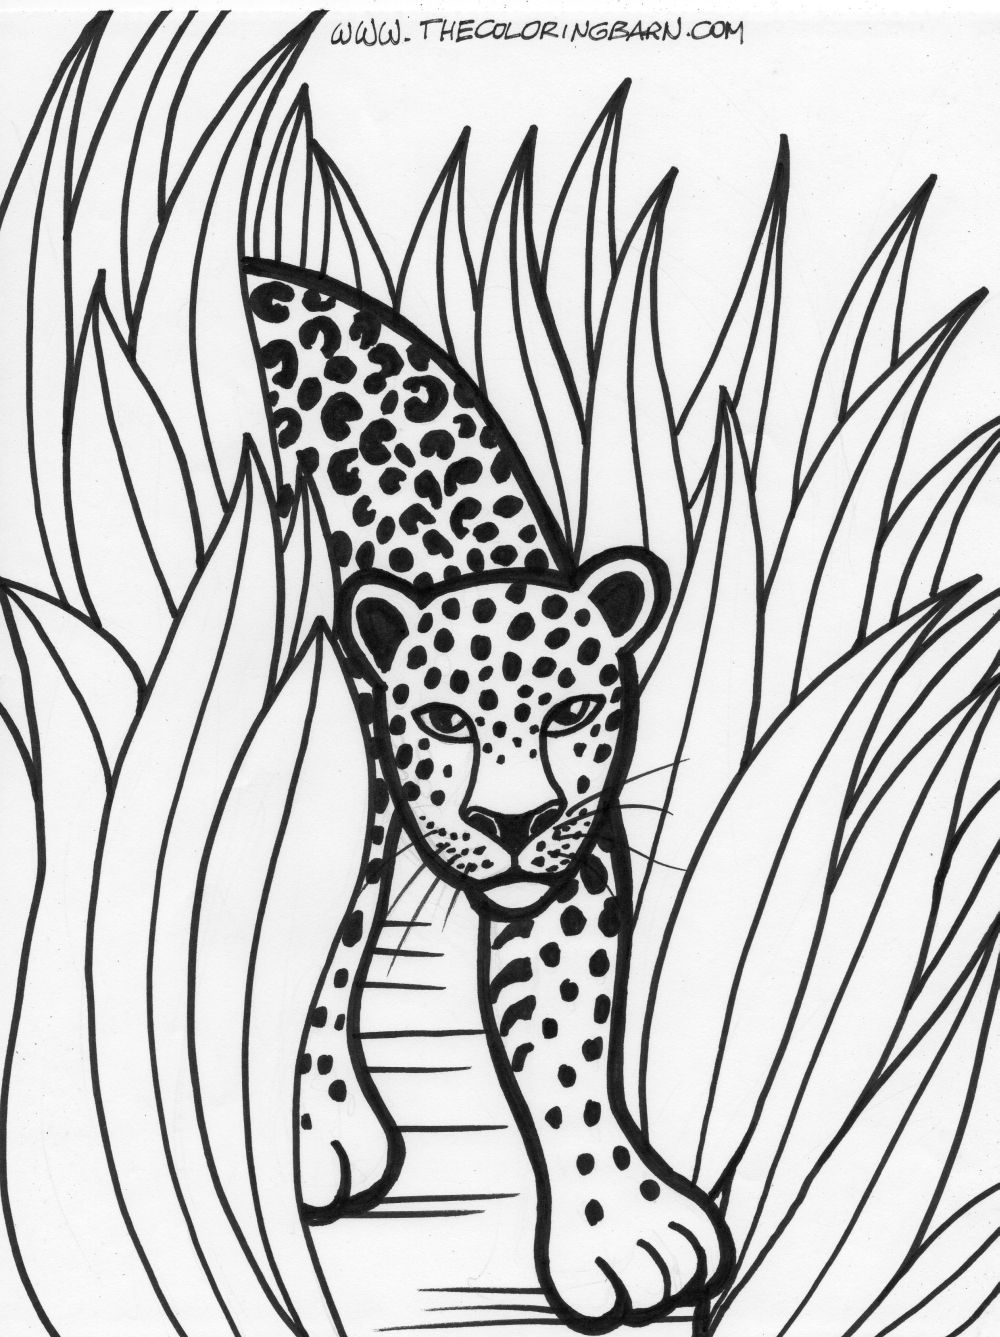 Rainforest printable coloring pages The Coloring Barn